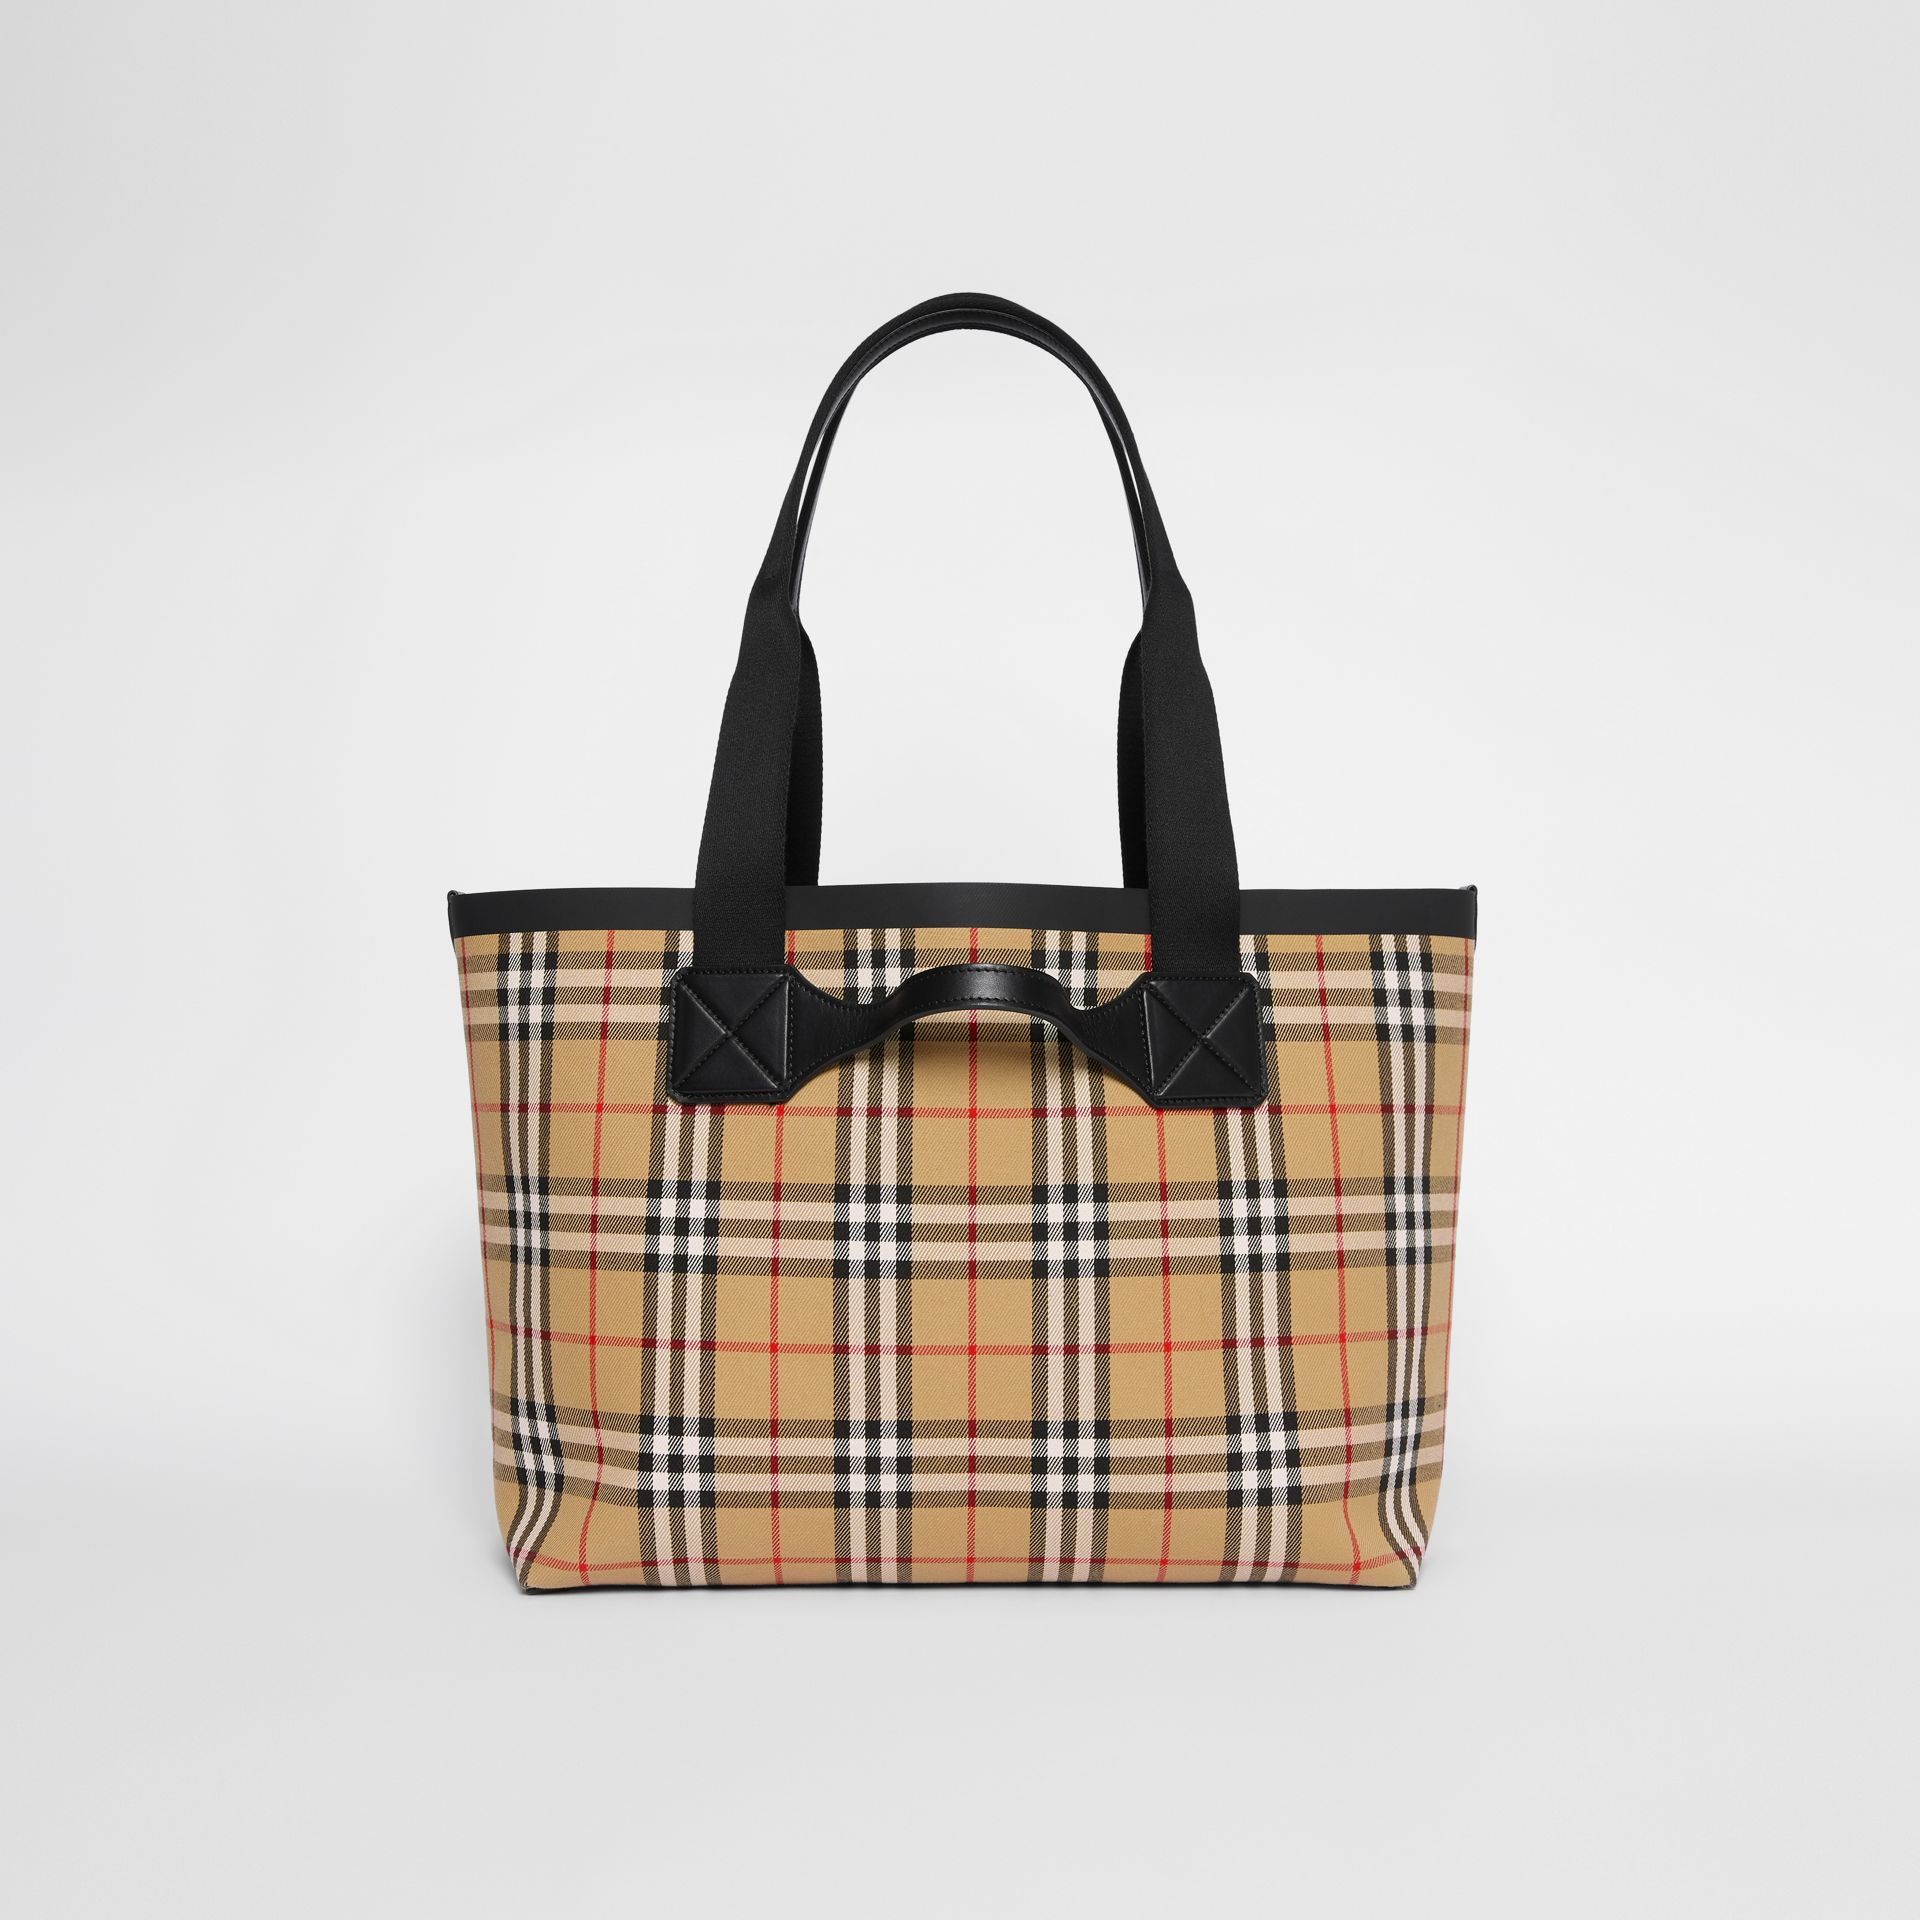 Medium Vintage Check Austen Tote in Archive Beige - Women | Burberry - gallery image 7